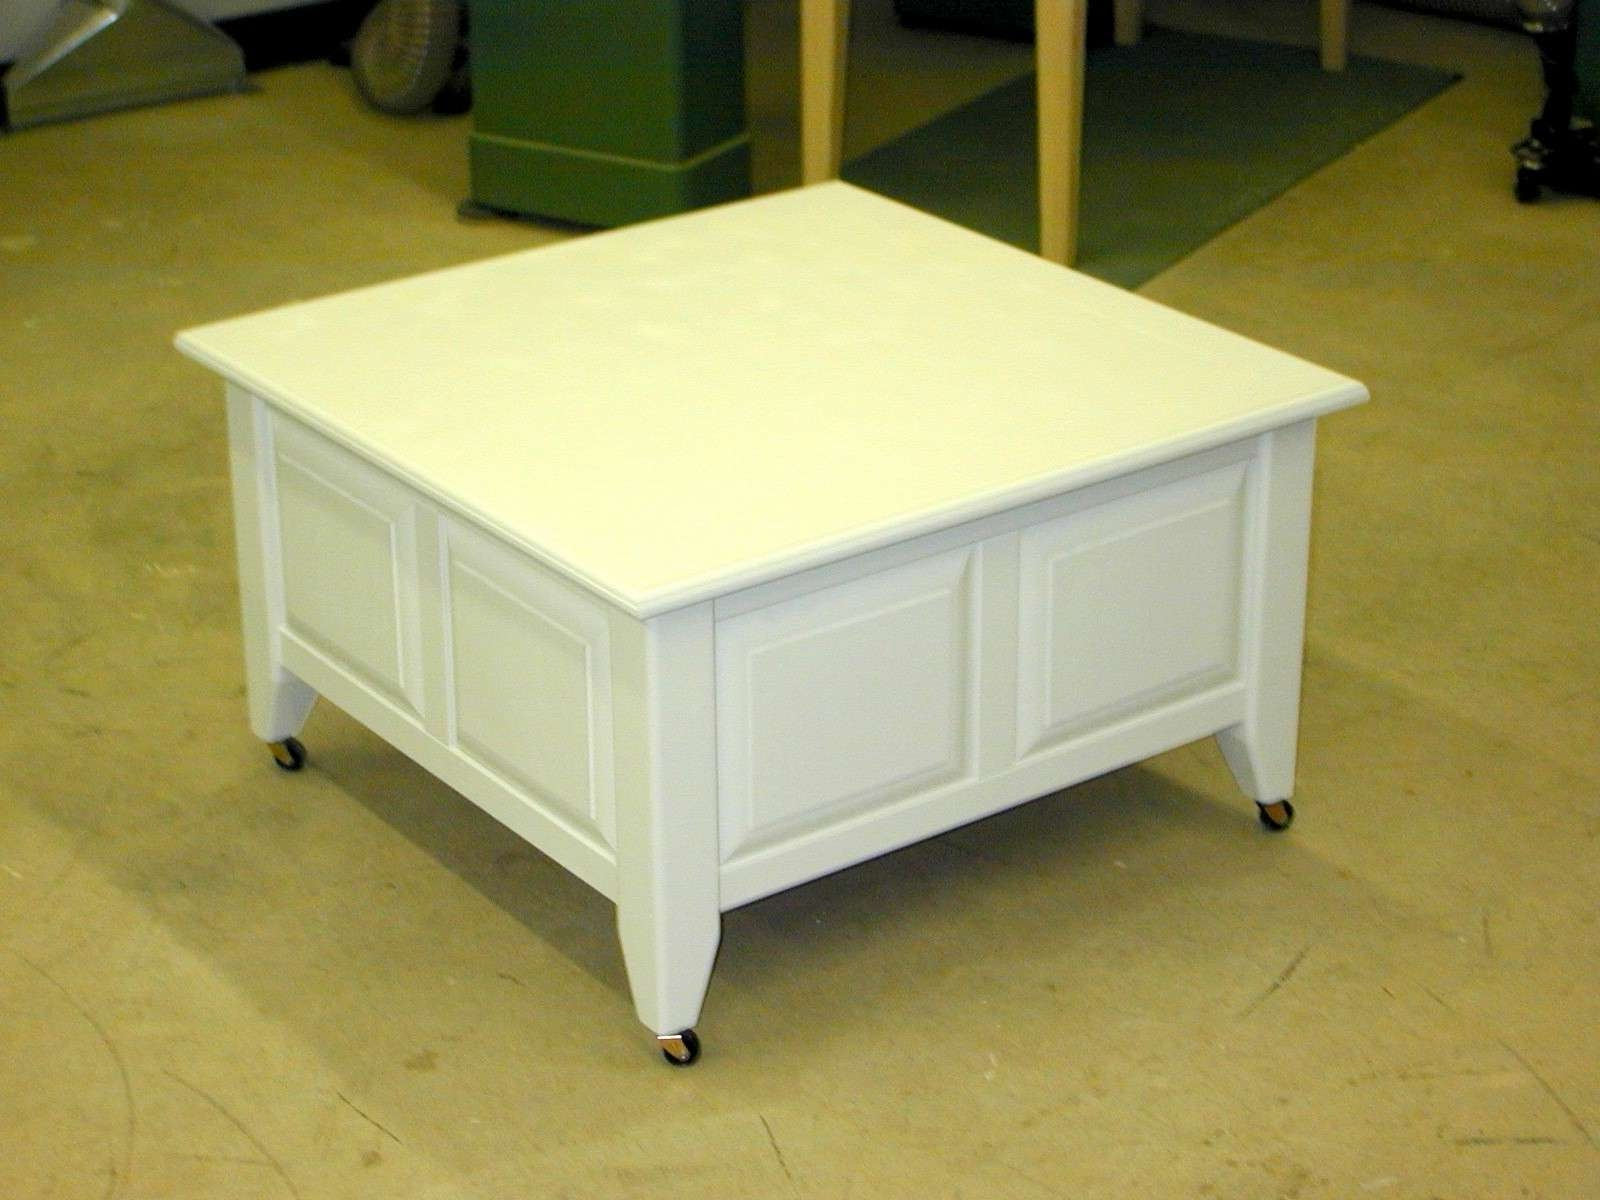 Most Recently Released Square Coffee Table Storages In Coffee Table: Exciting Square Coffee Table With Storage Small (View 7 of 20)